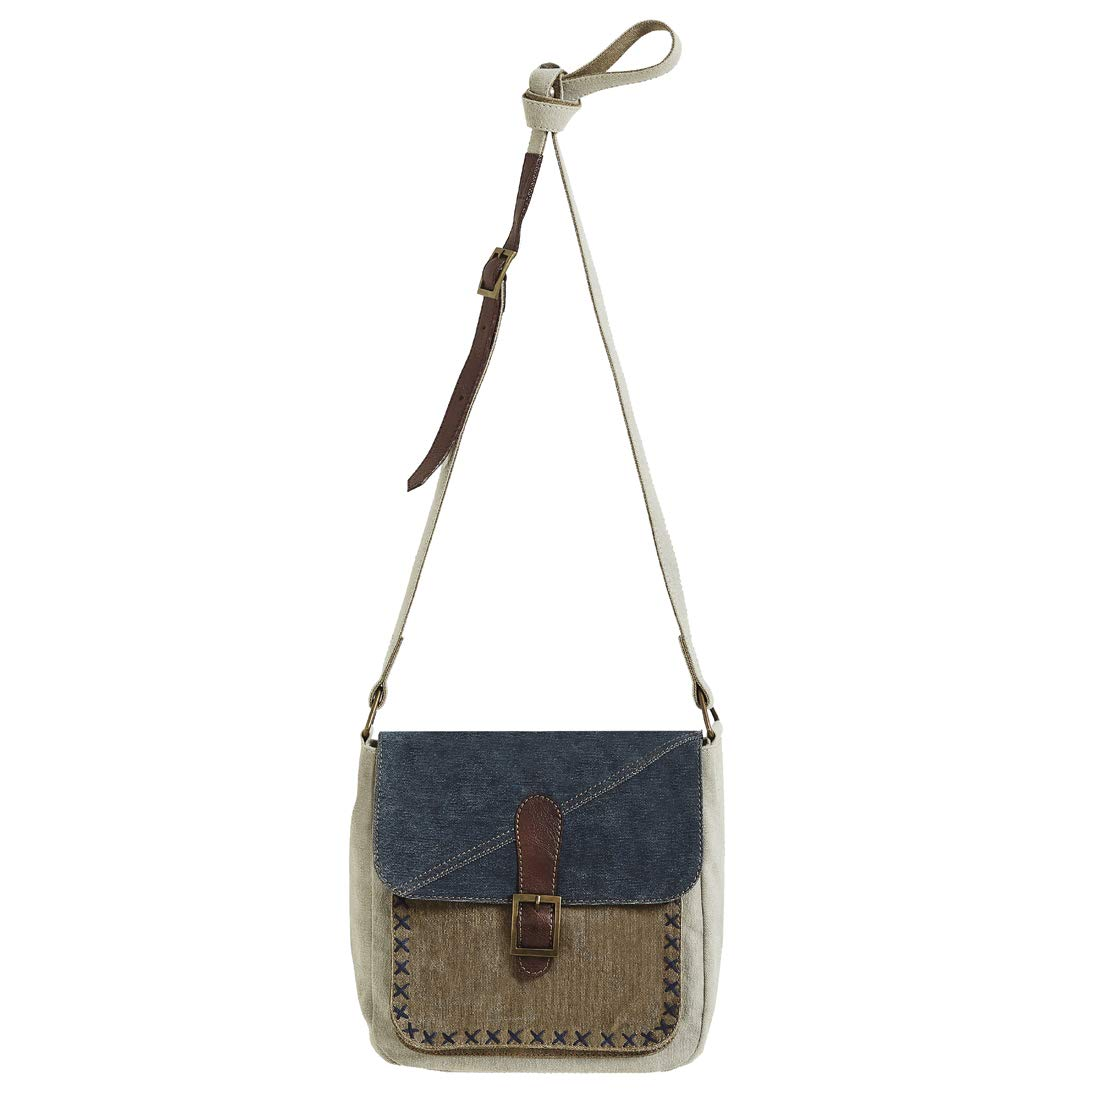 Mona B Purse Women's Upcycled Canvas Luna Crossbody Shoulder Bag